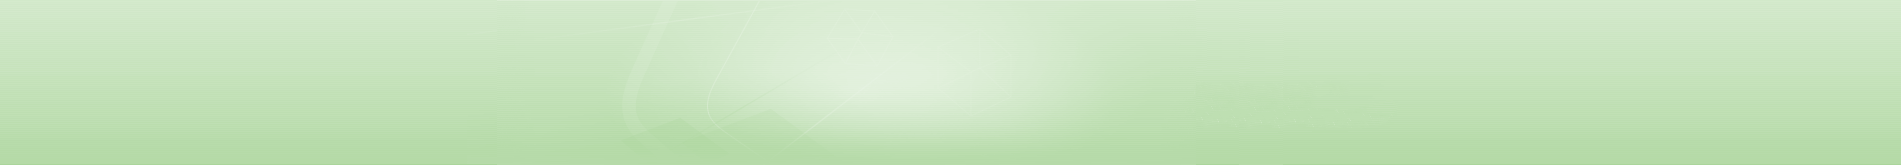 banner-1901x165-LIGHT_GREEN